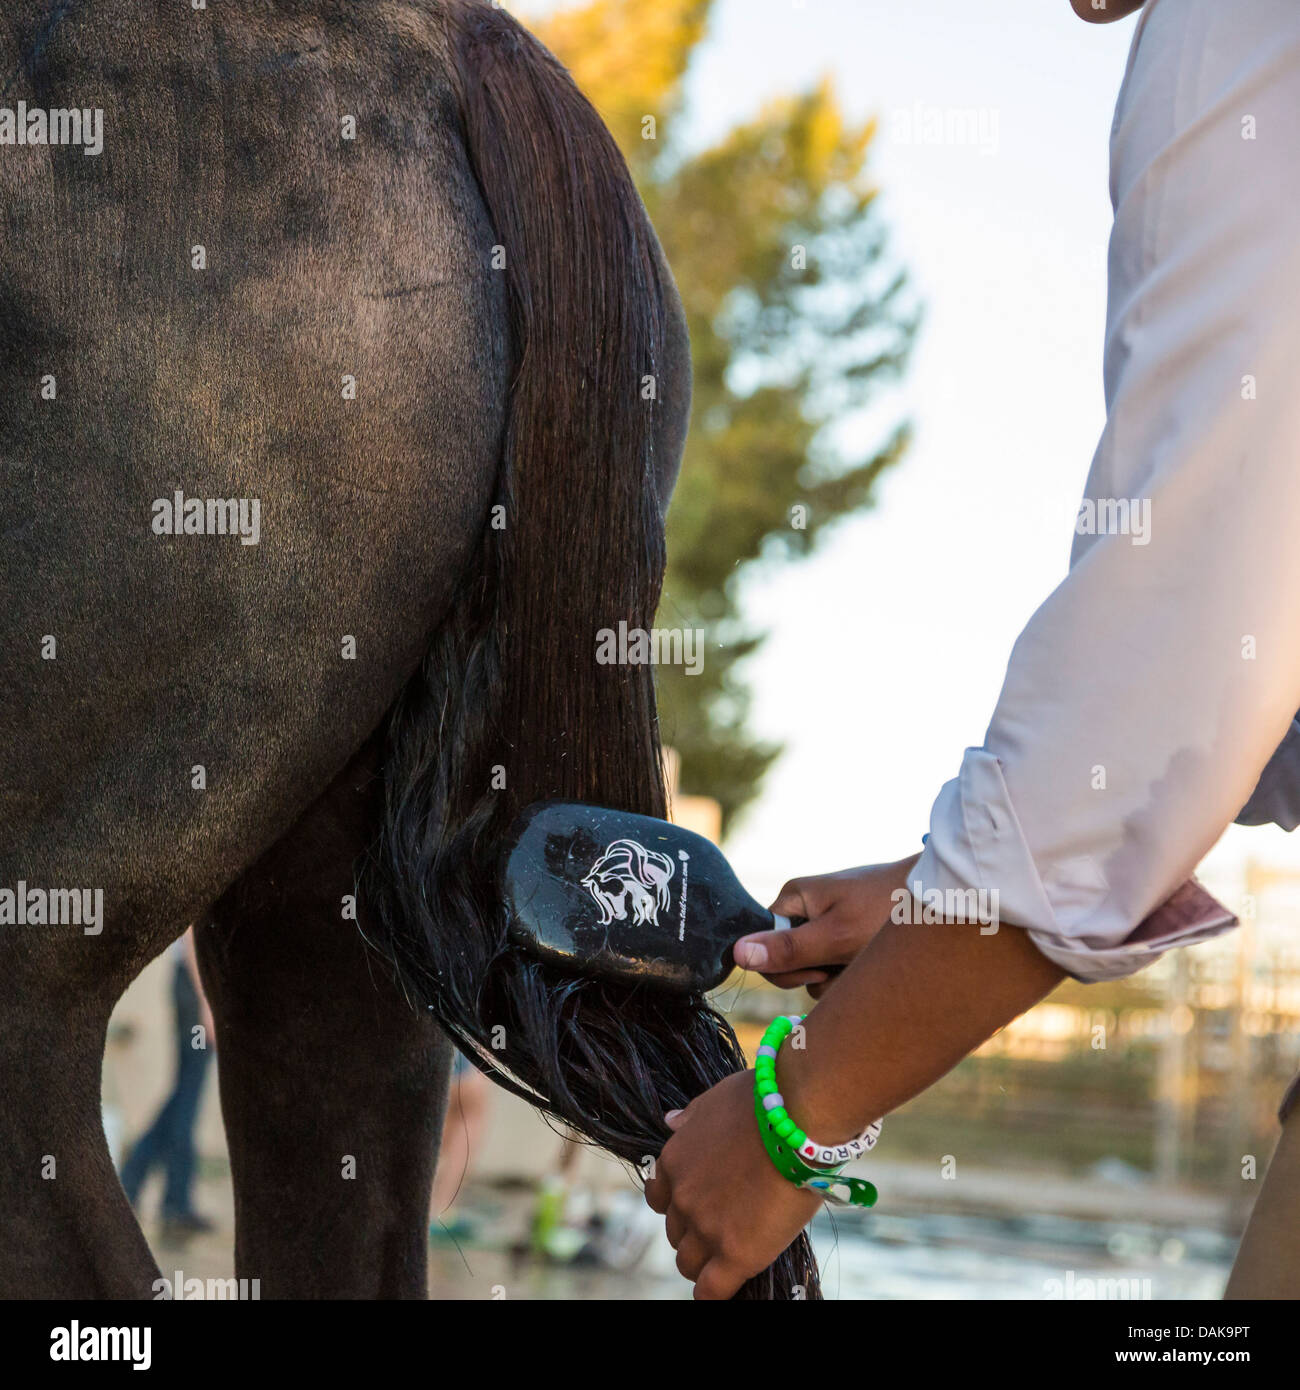 Young woman brushing the tail of her horse - Stock Image